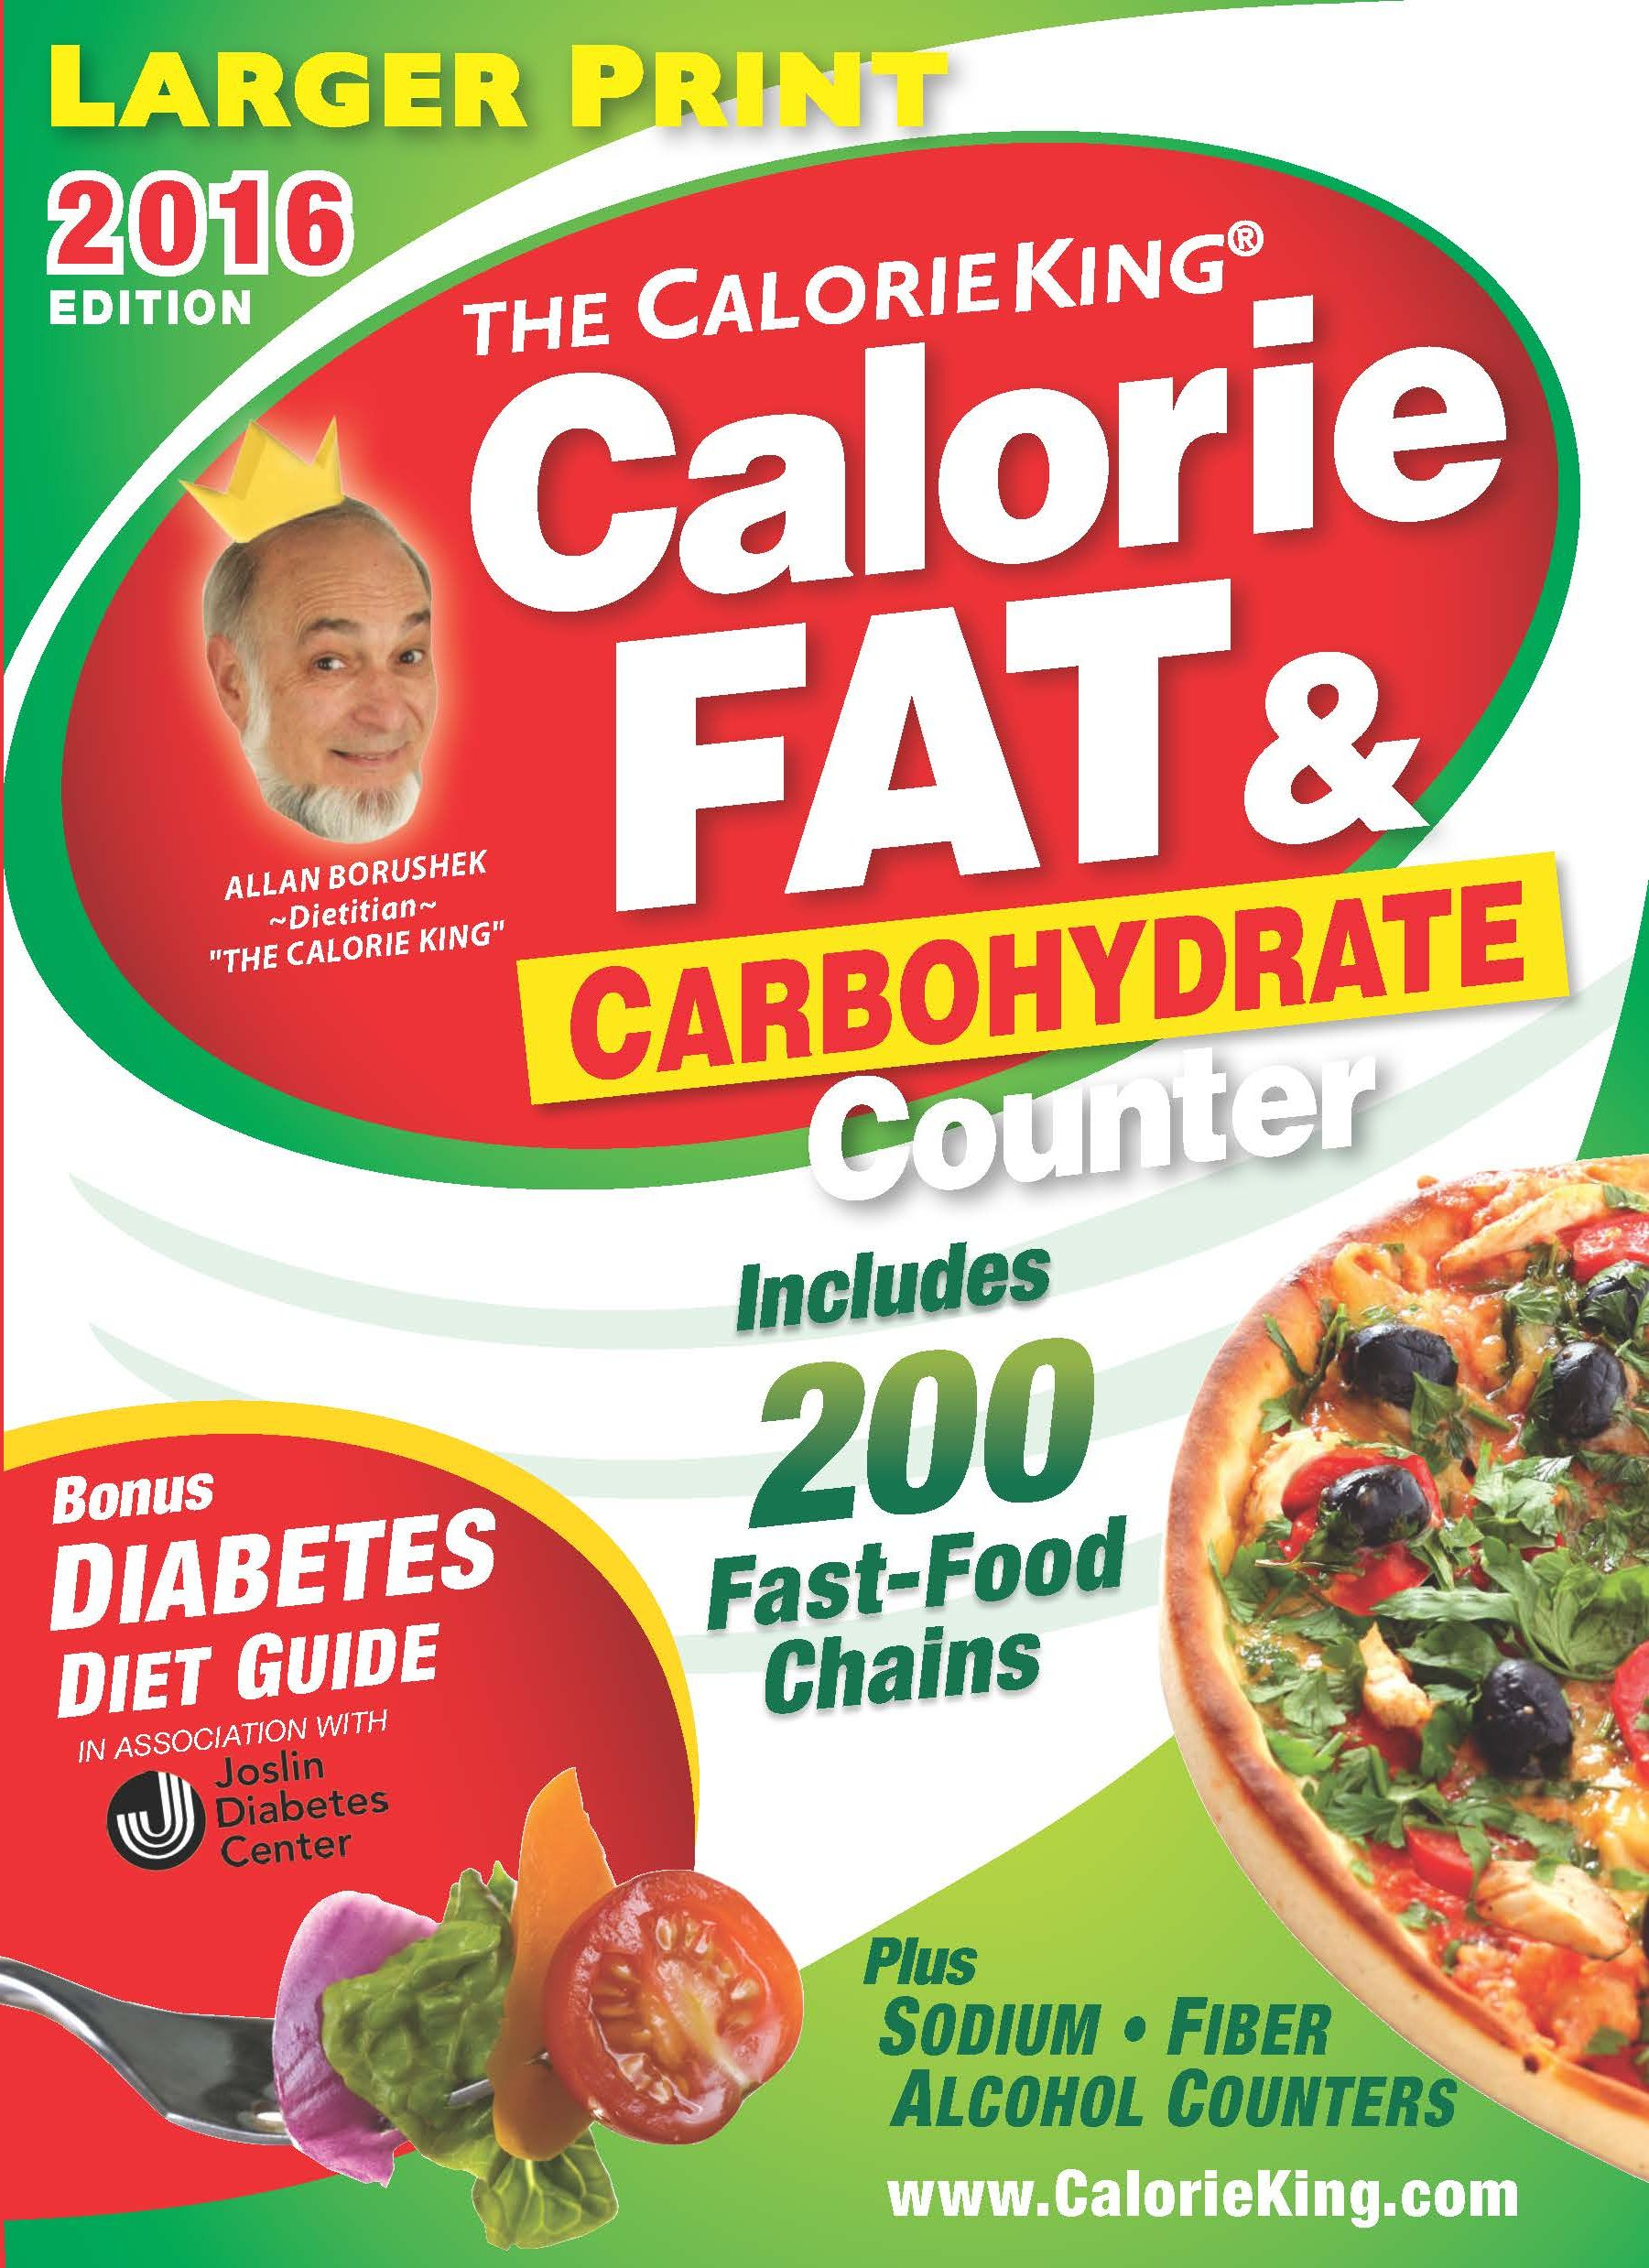 The CalorieKing Calorie, Fat & Carbohydrate Counter 2016